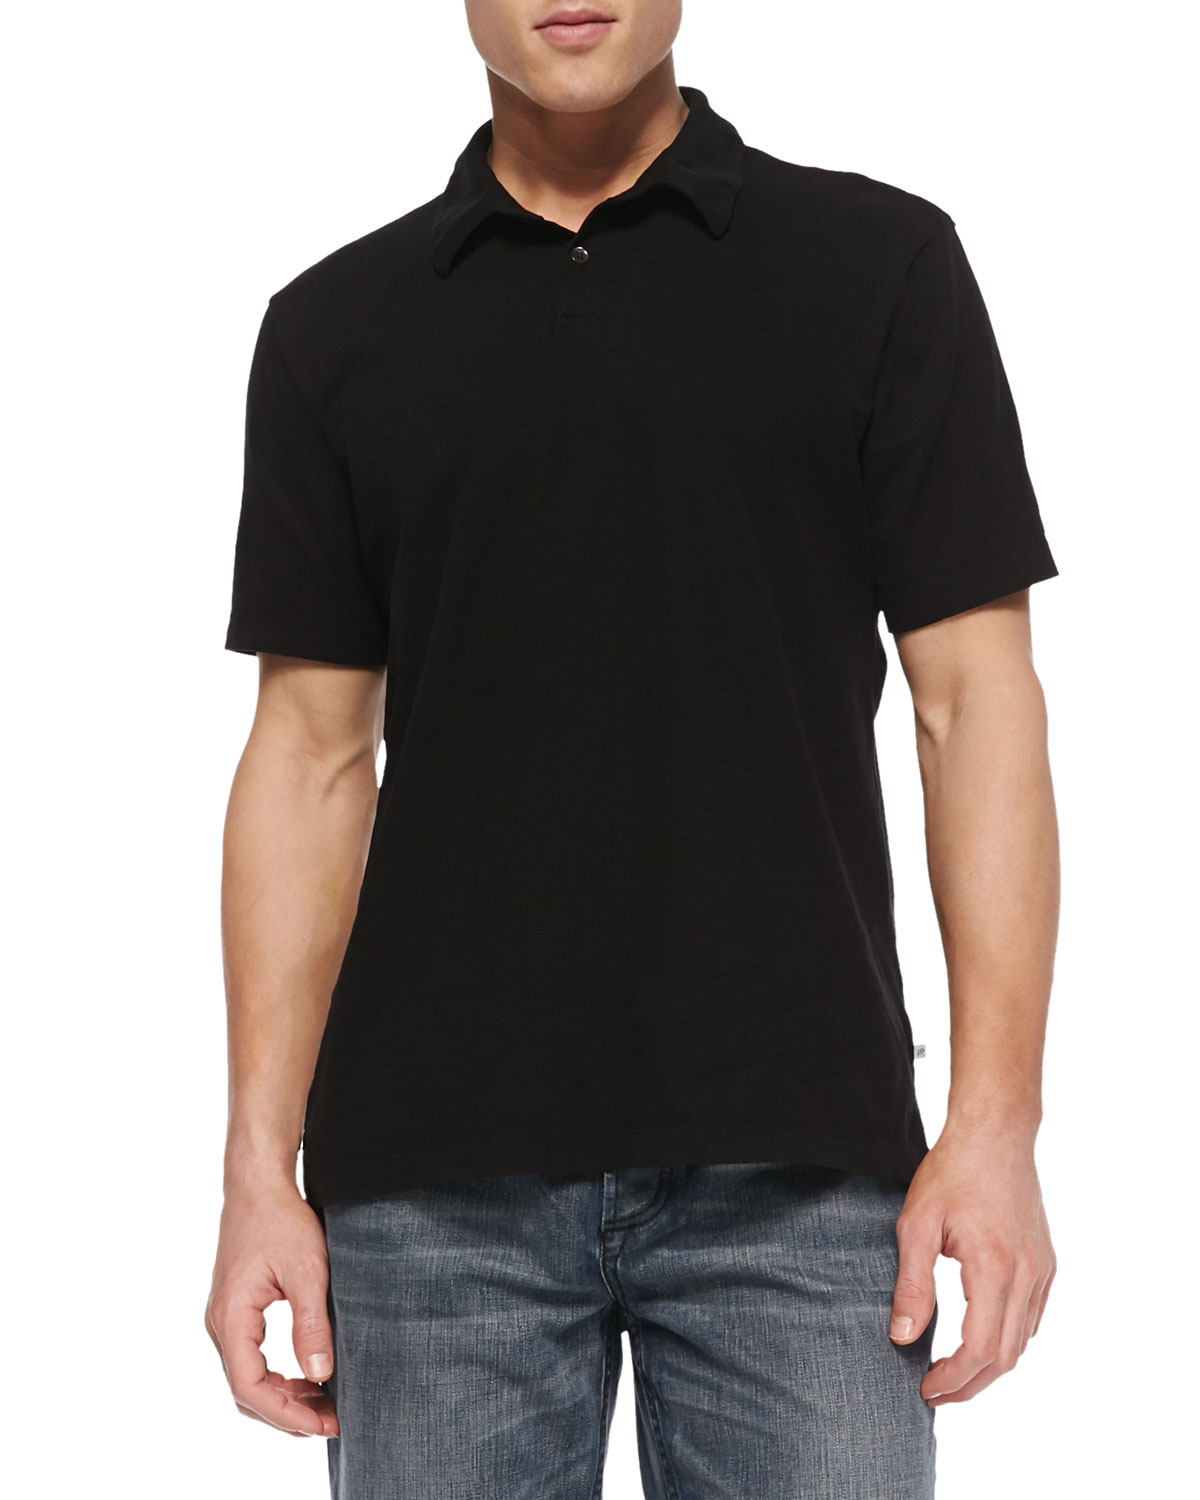 Mens Sueded Jersey Polo Shirt, Black   James Perse   Black (1)